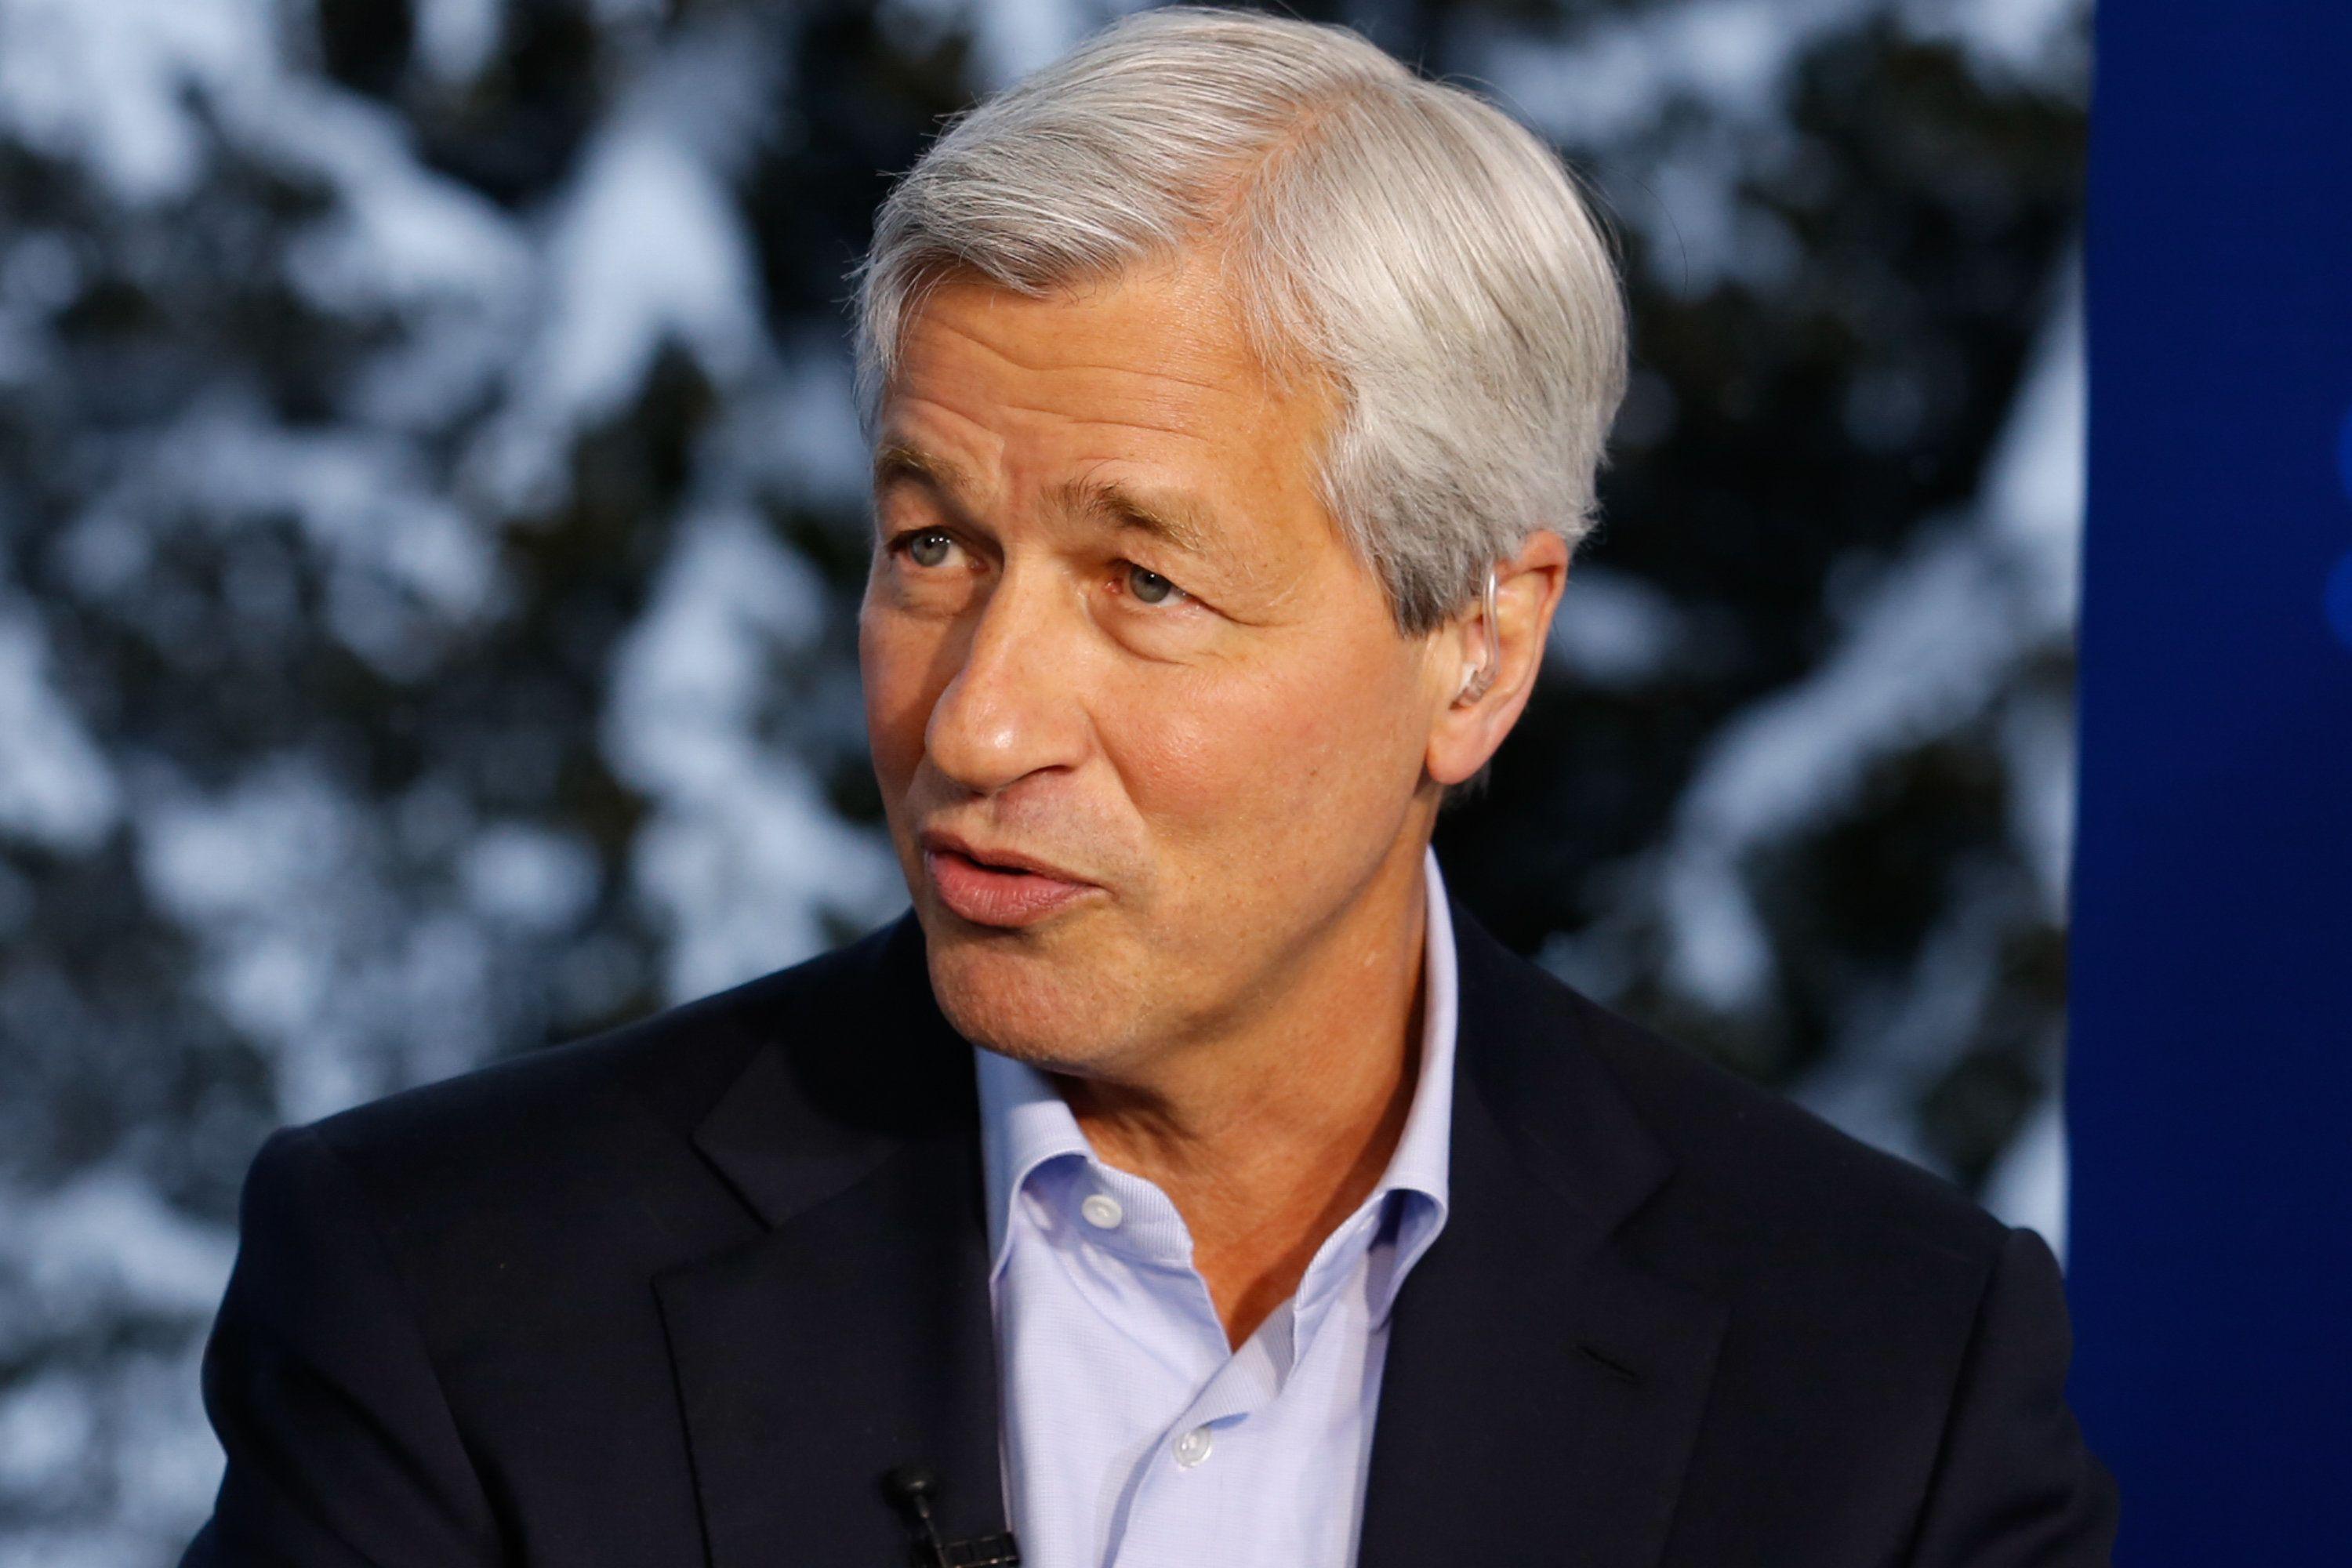 DAVOS 2016; World Economic Forum -- Pictured: Jamie Dimon, chairman, president and CEO of JP Morgan Chase, in an interview at the annual World Economic Forum in Davos, Switzerland, on January 20, 2016 -- (Photo by: David A.Grogan/CNBC/NBCU Photo Bank via Getty Images)